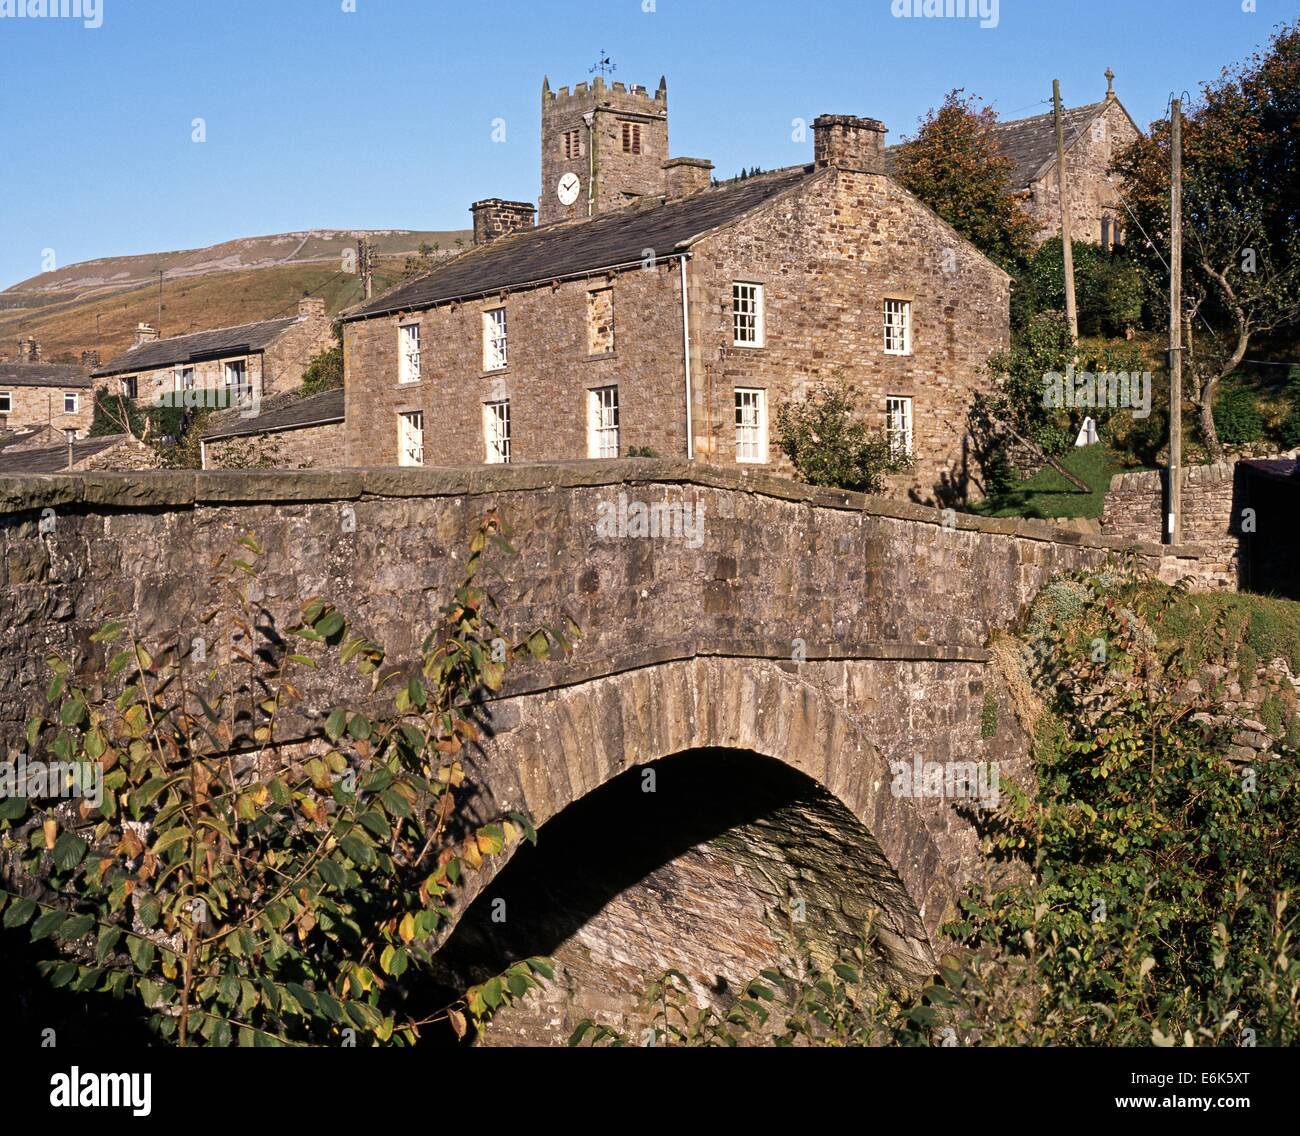 Stone road bridge over Straw Beck with village and church to rear, Muker, Swaledale, Yorkshire Dales, North Yorkshire, - Stock Image